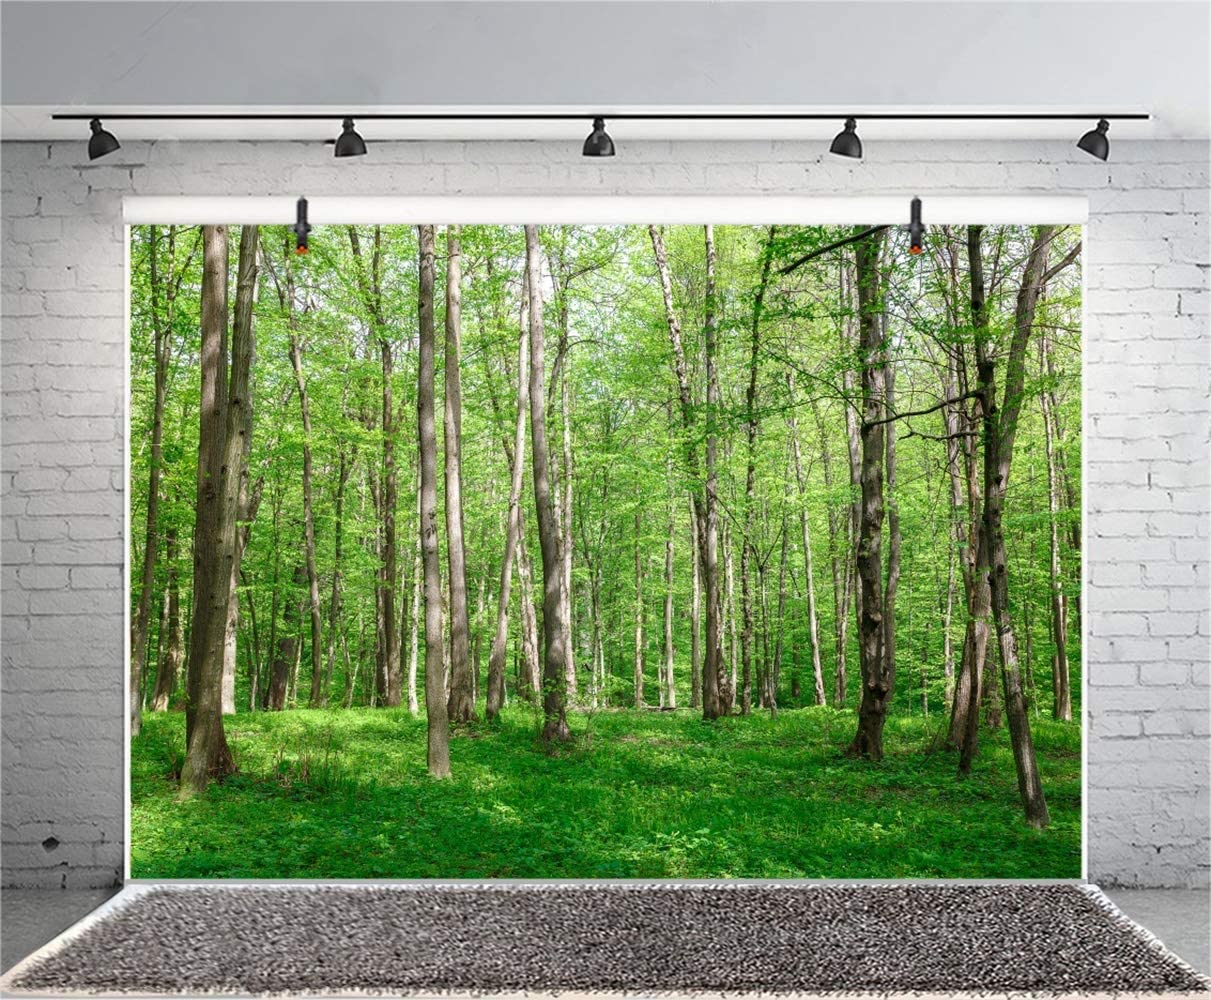 10x7ft Spring Vibrant Forest Trees Vinyl Photography Background Lush Shrubwood Green Weed Backdrop Spring Scenic Landscape Wallpaper Camping Shoot Studio Props